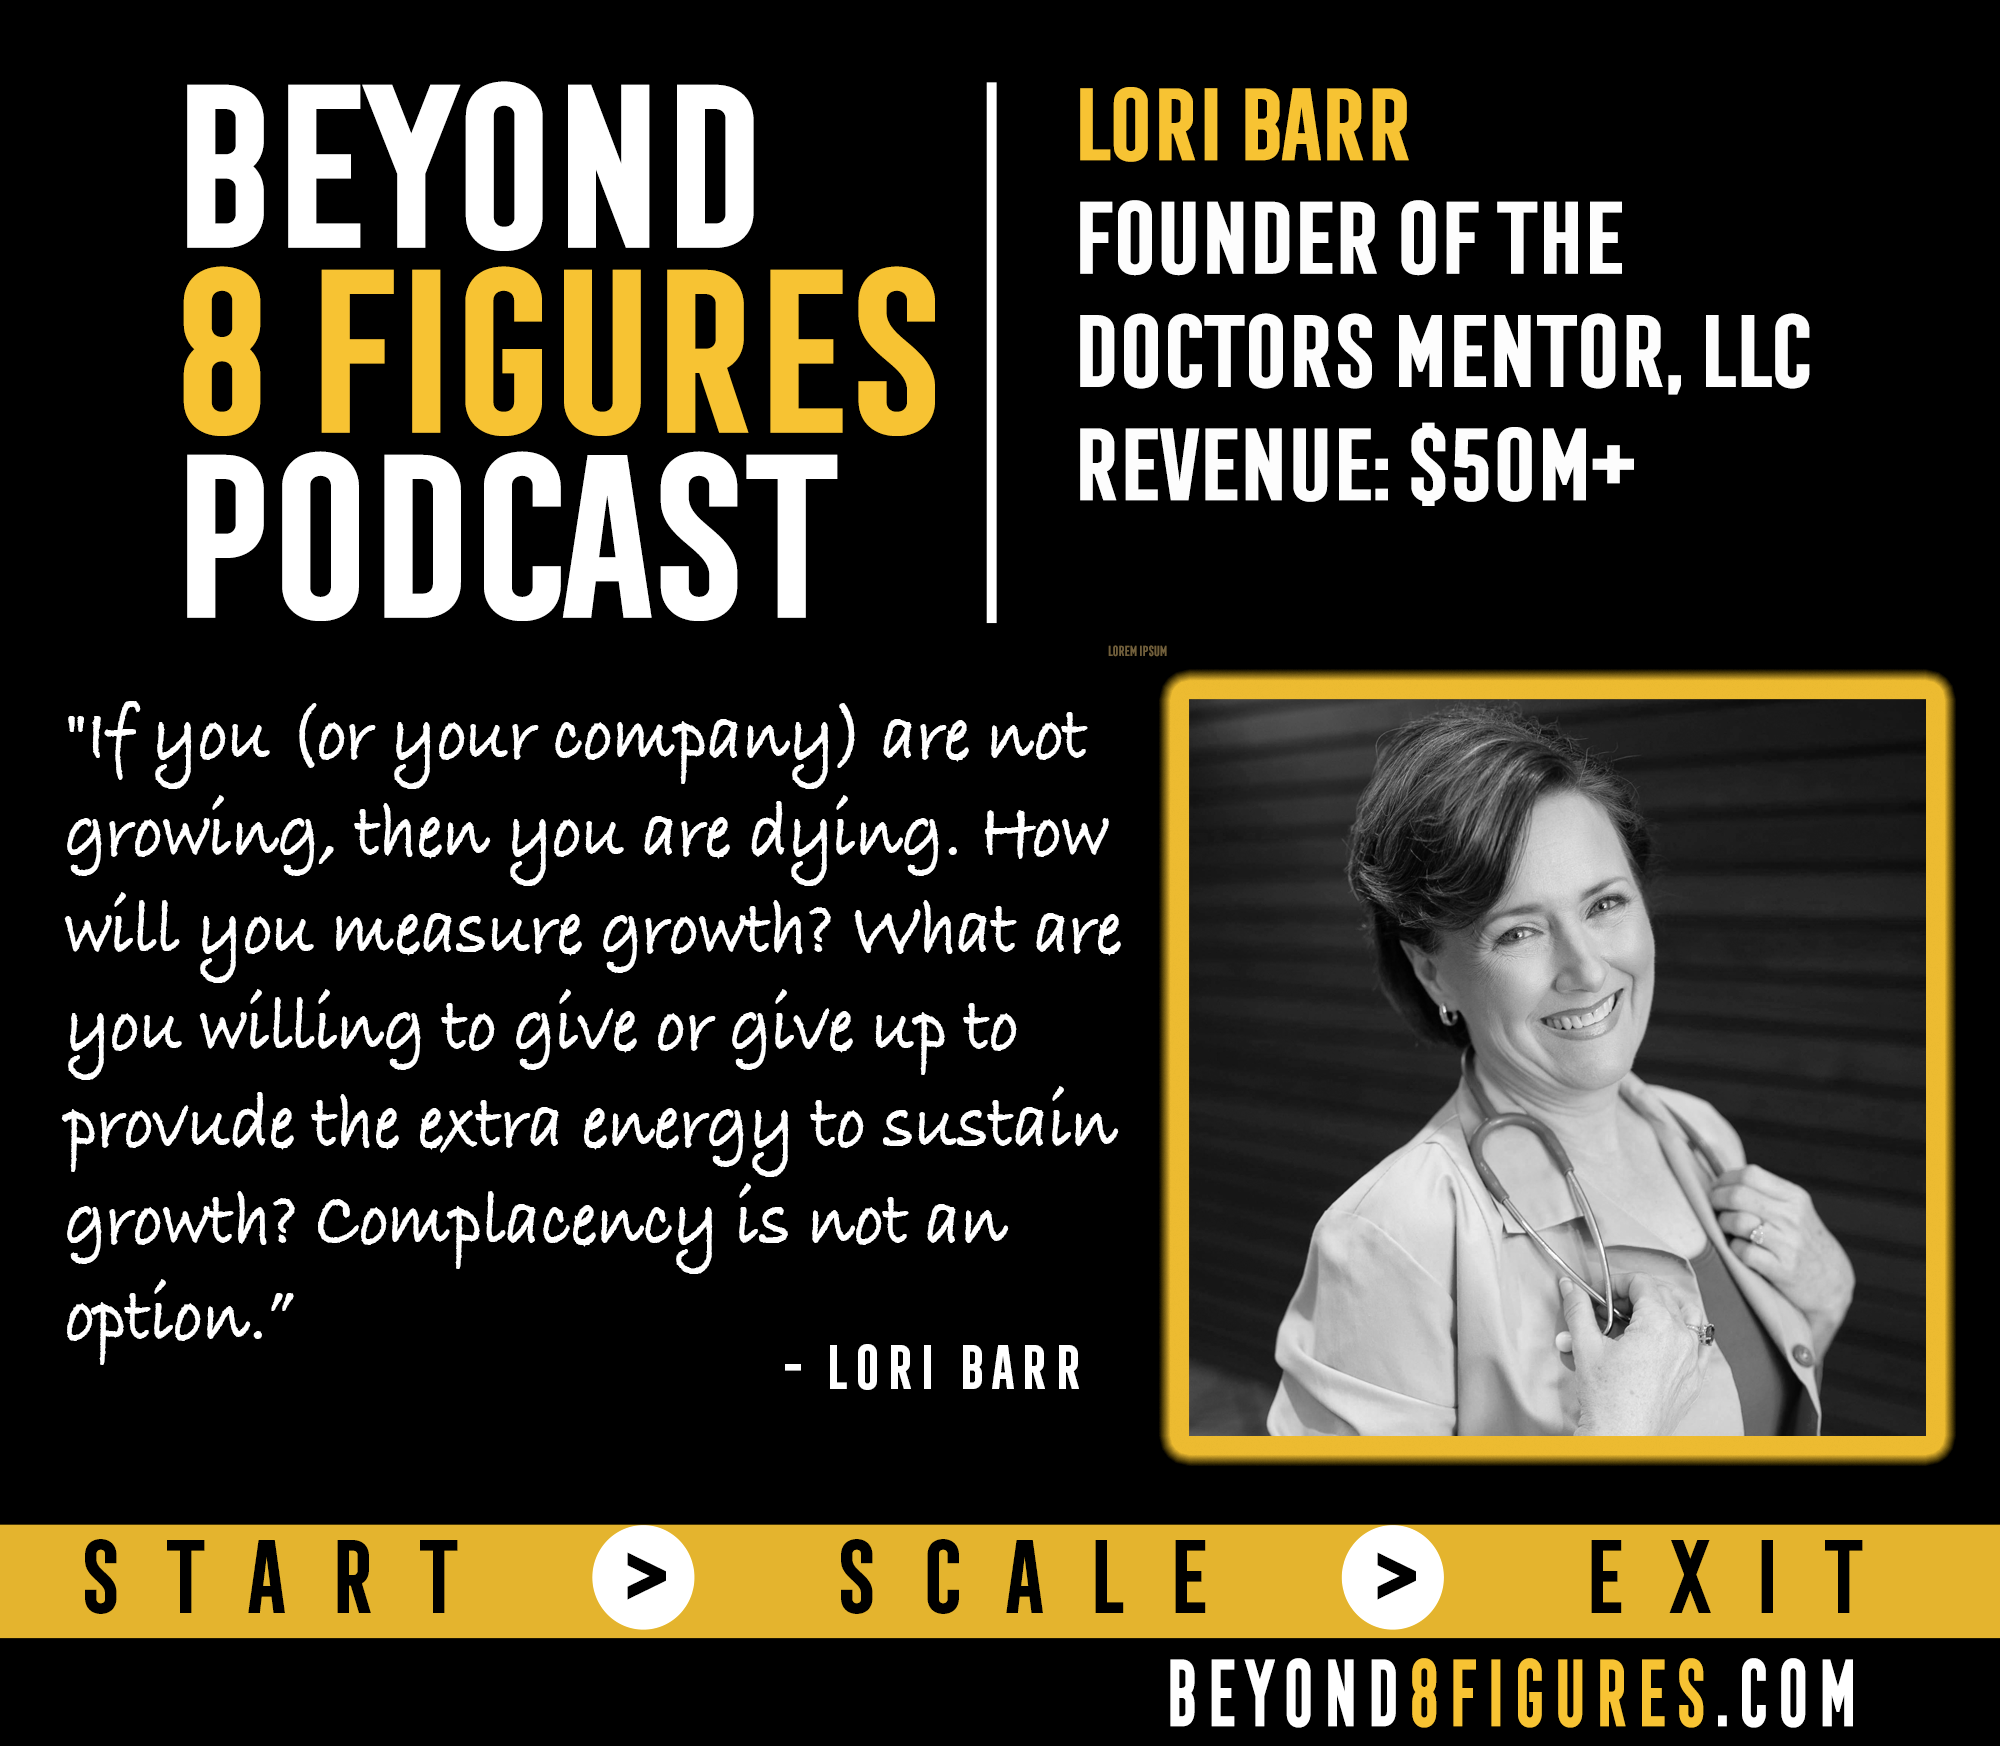 $50M+ in Annual Revenue – Dr. Lori Barr, The Doctor's Mentor